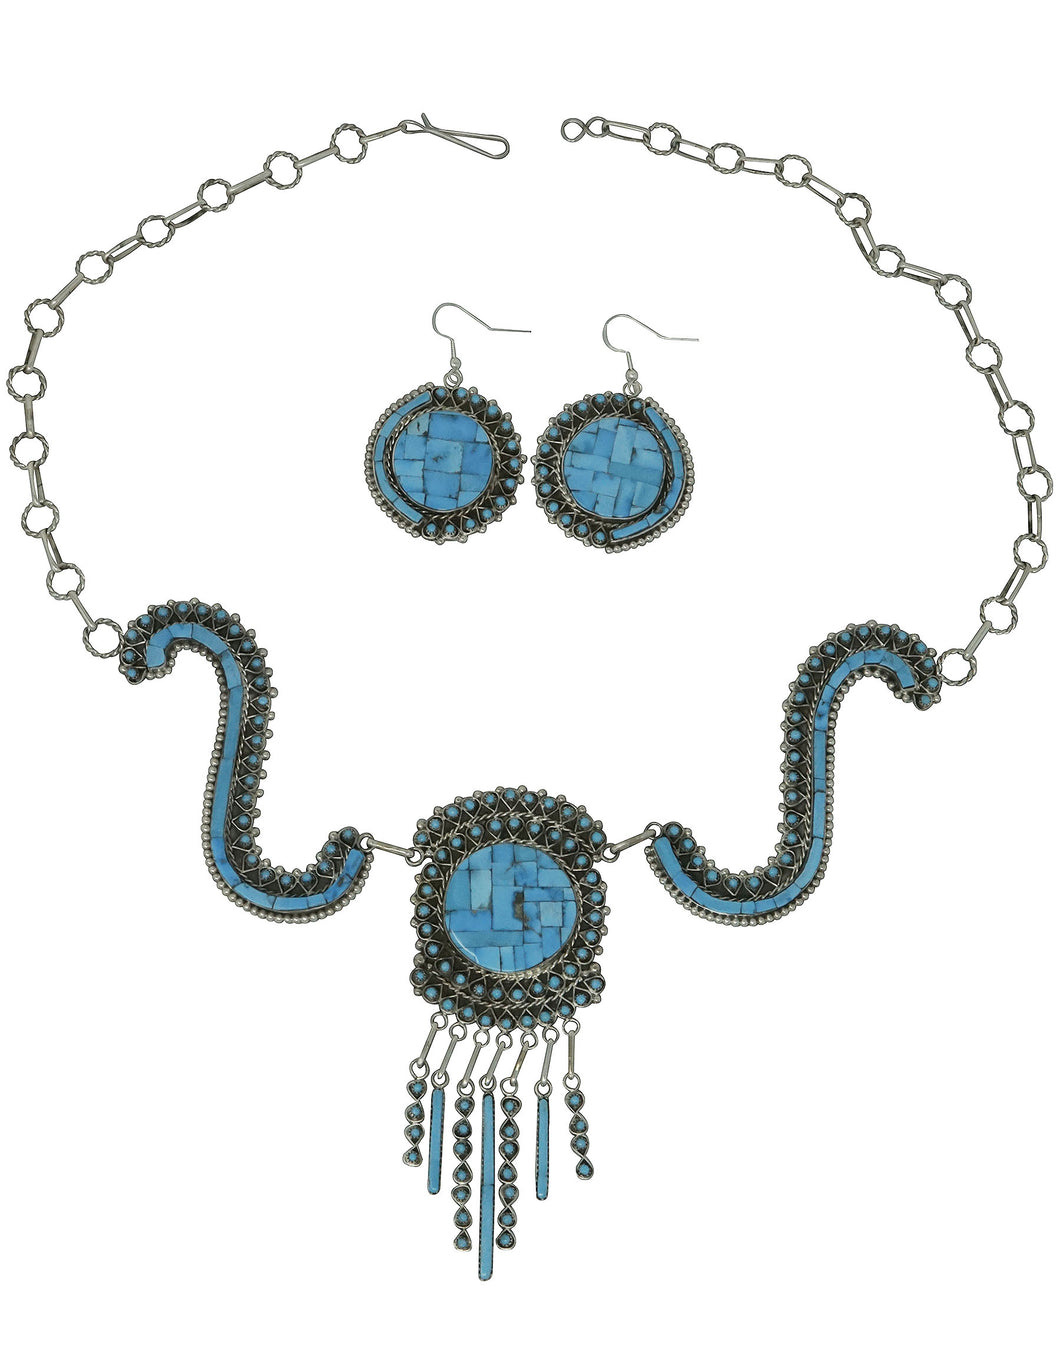 Jesse Johnson, Necklace, Earrings, Turquoise, Petit Point, Inlay, Zuni Made, 26